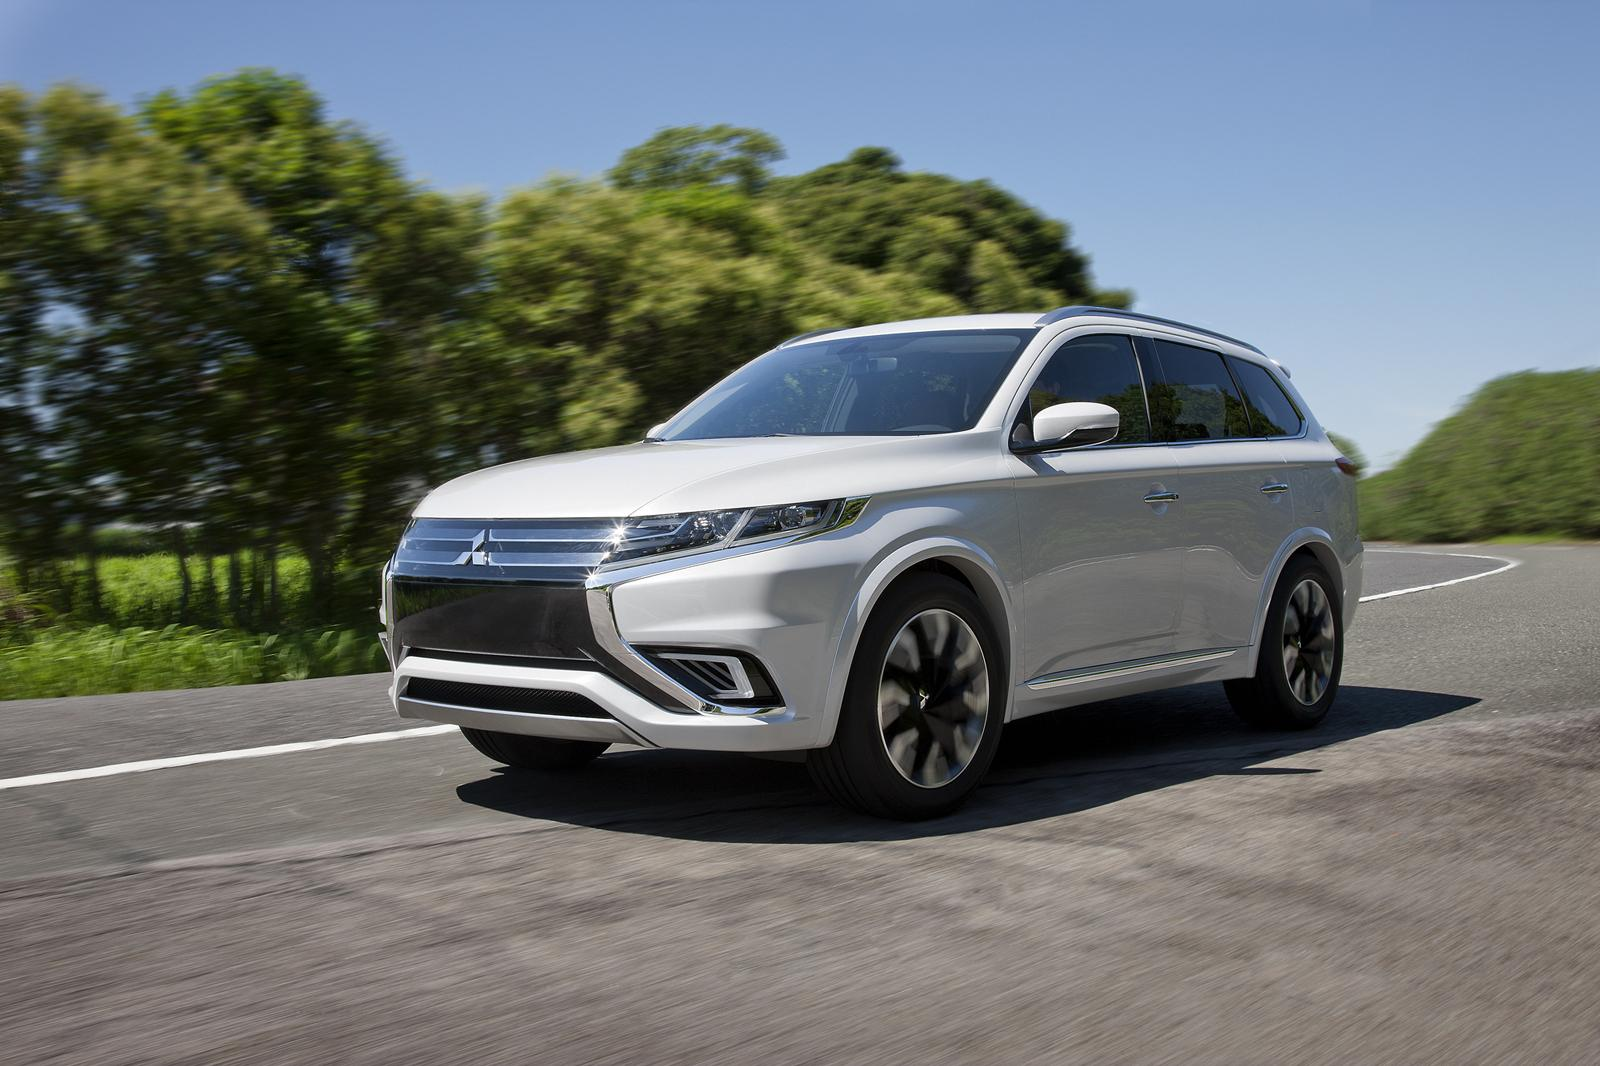 mitsubishi outlander phev concept s unveiled ahead of paris debut. Black Bedroom Furniture Sets. Home Design Ideas